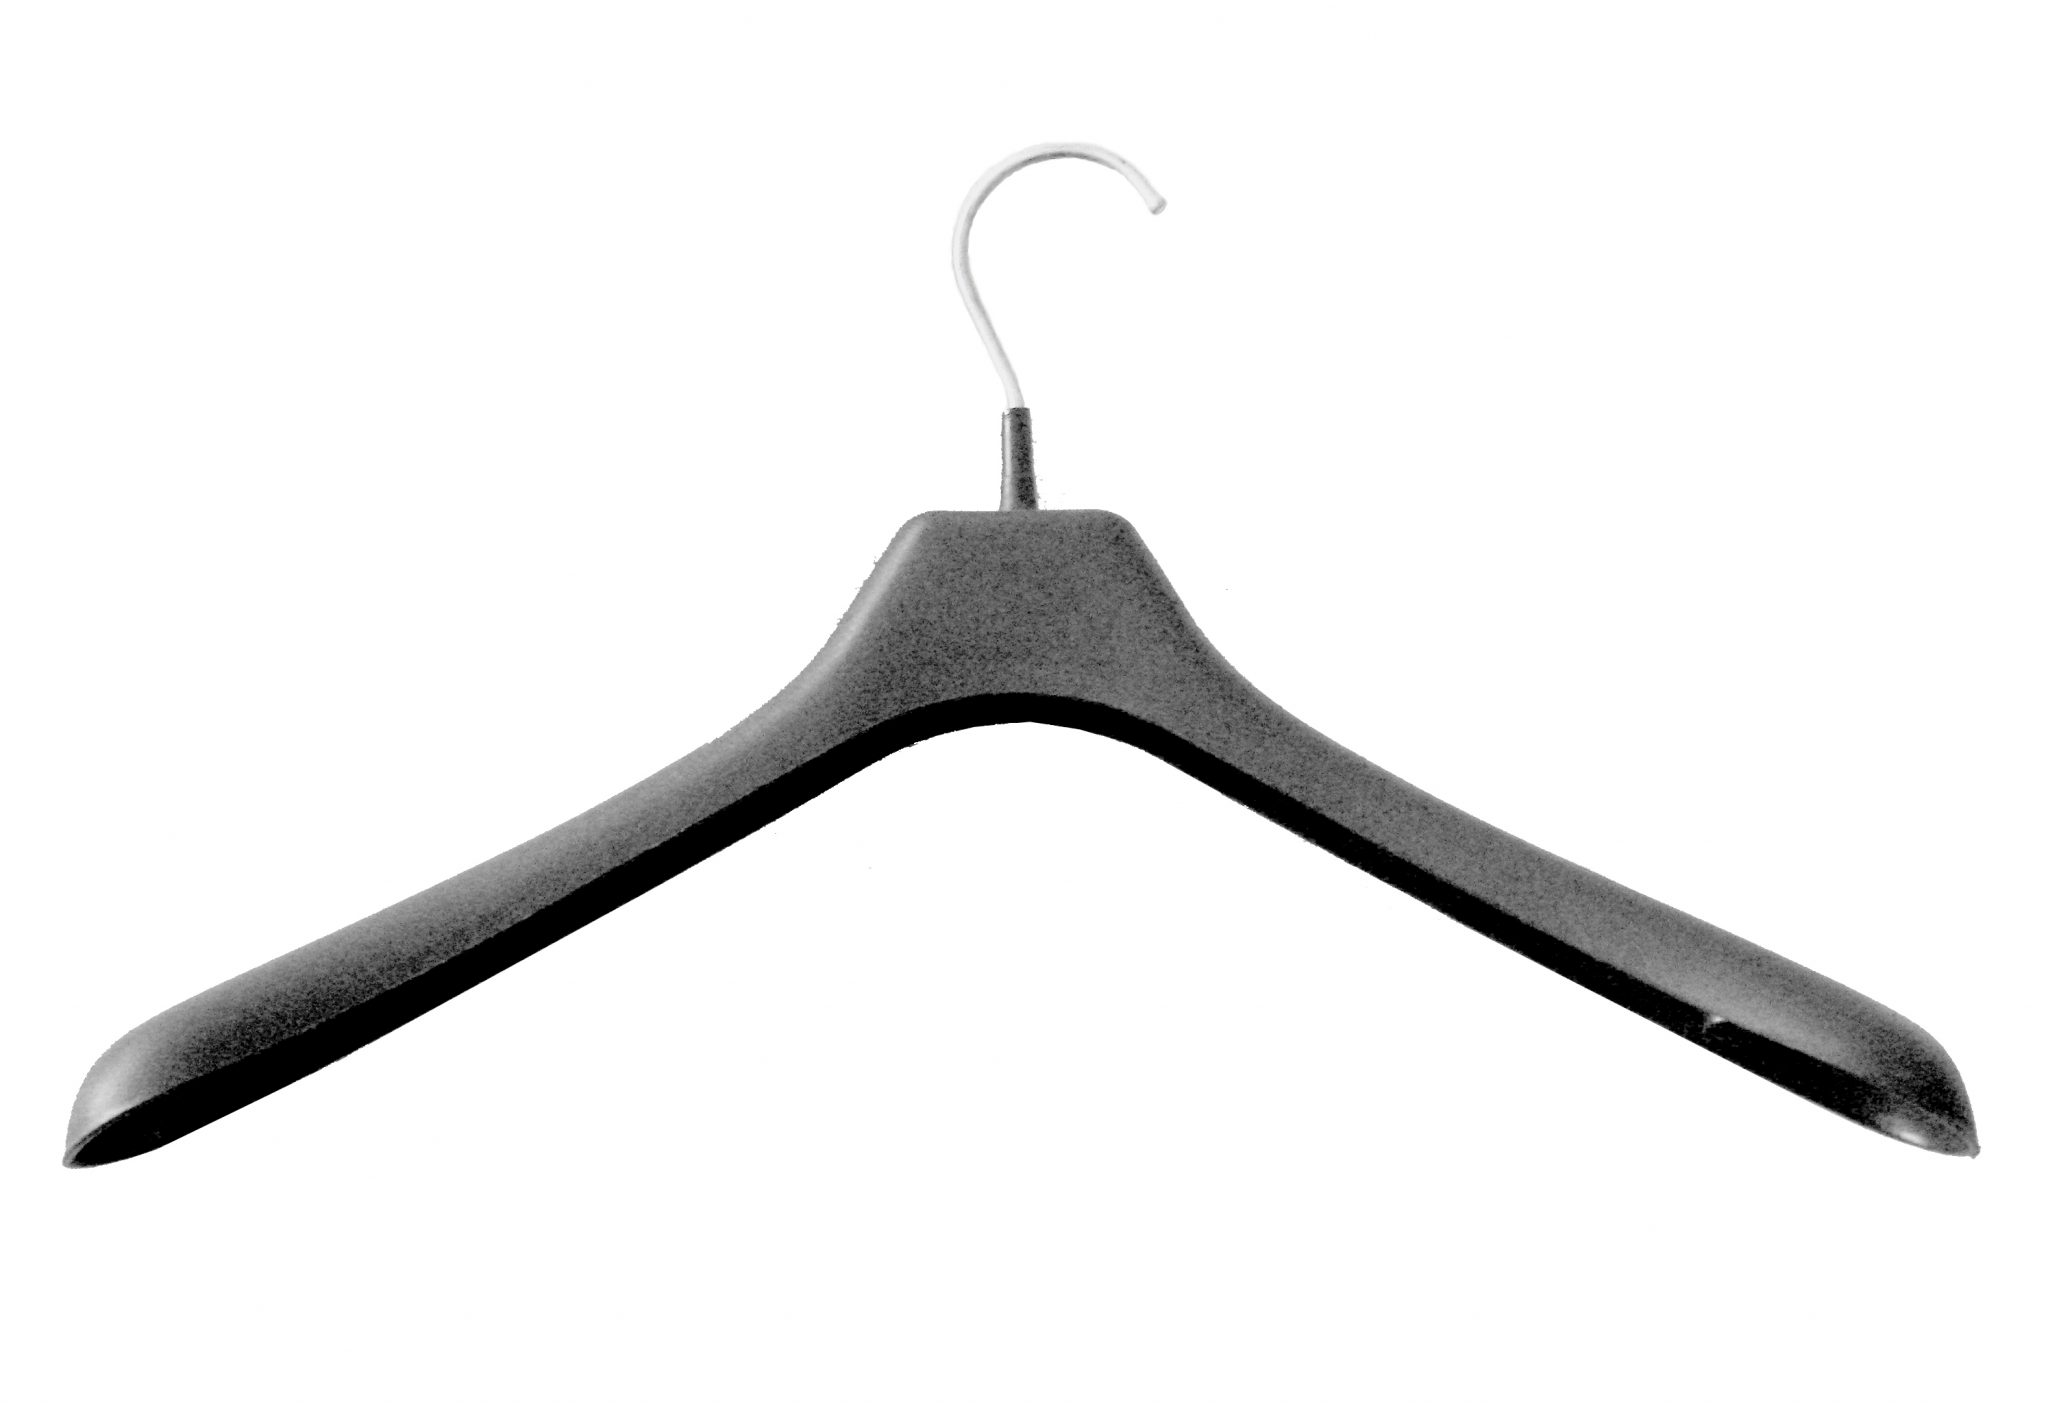 Pics for black clothes hanger for Clothespin photo hanger